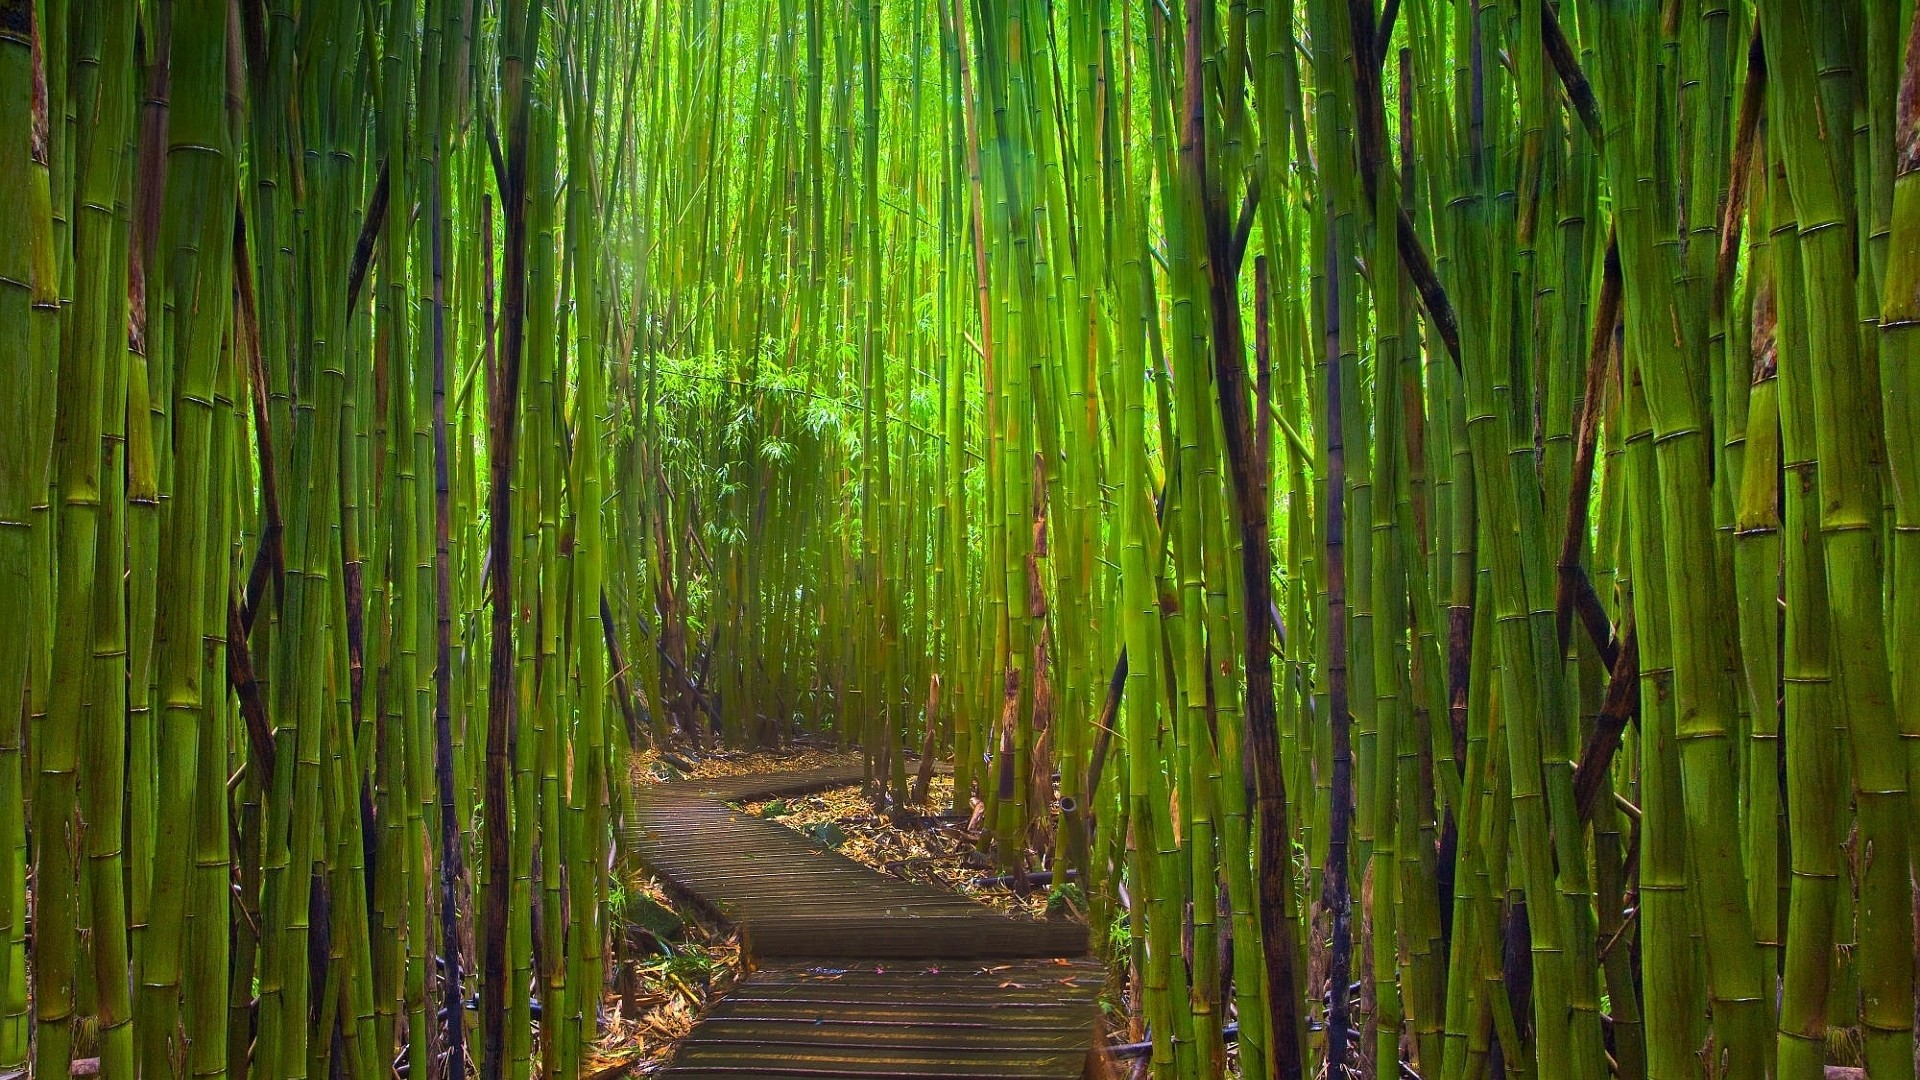 1920x1080 Preview wallpaper bamboo, thickets, path, bends, young, green